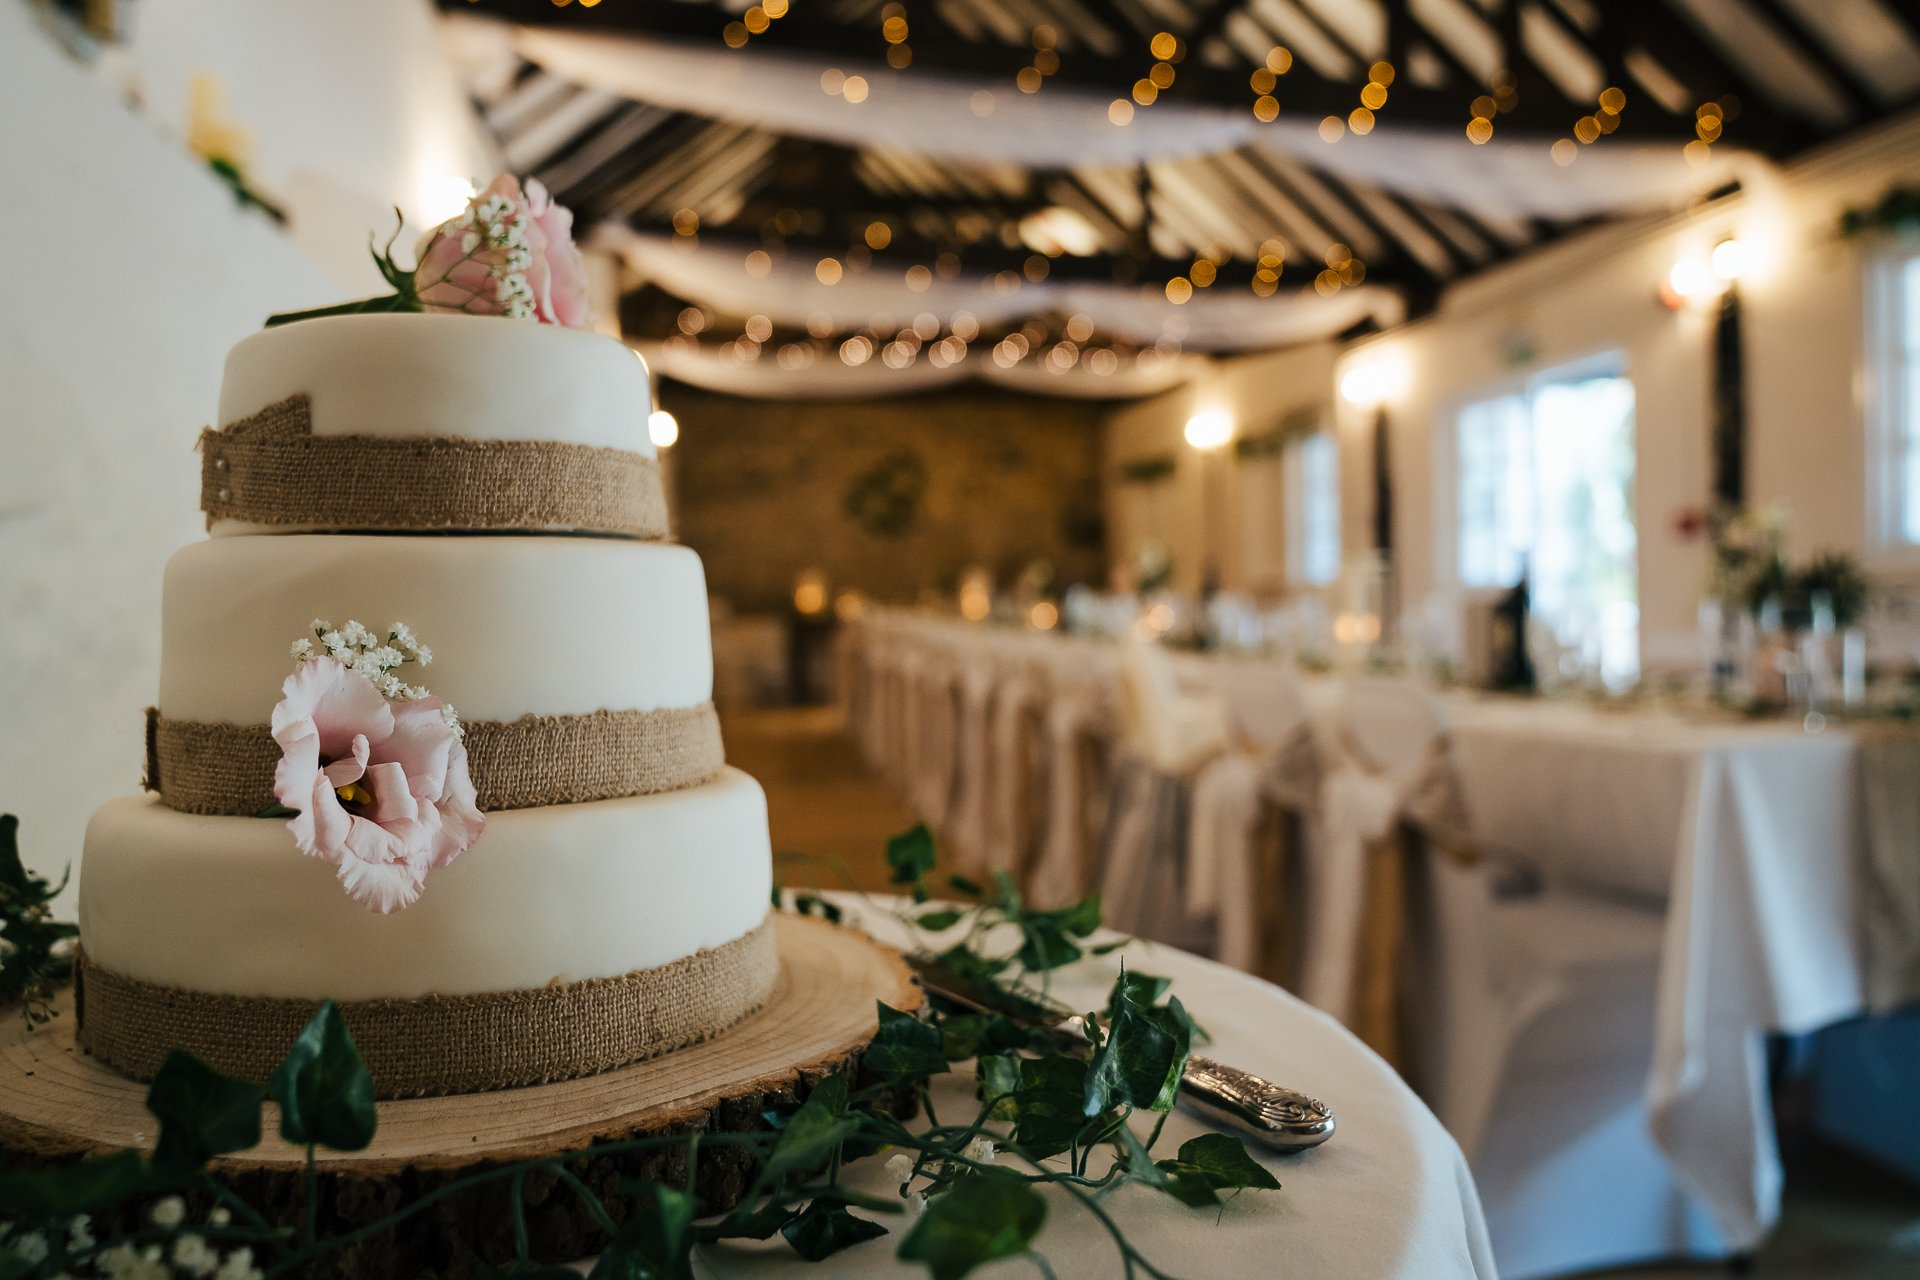 Wedding cake and wedding breakfast take set for intimate wedding at The Bull Hotel